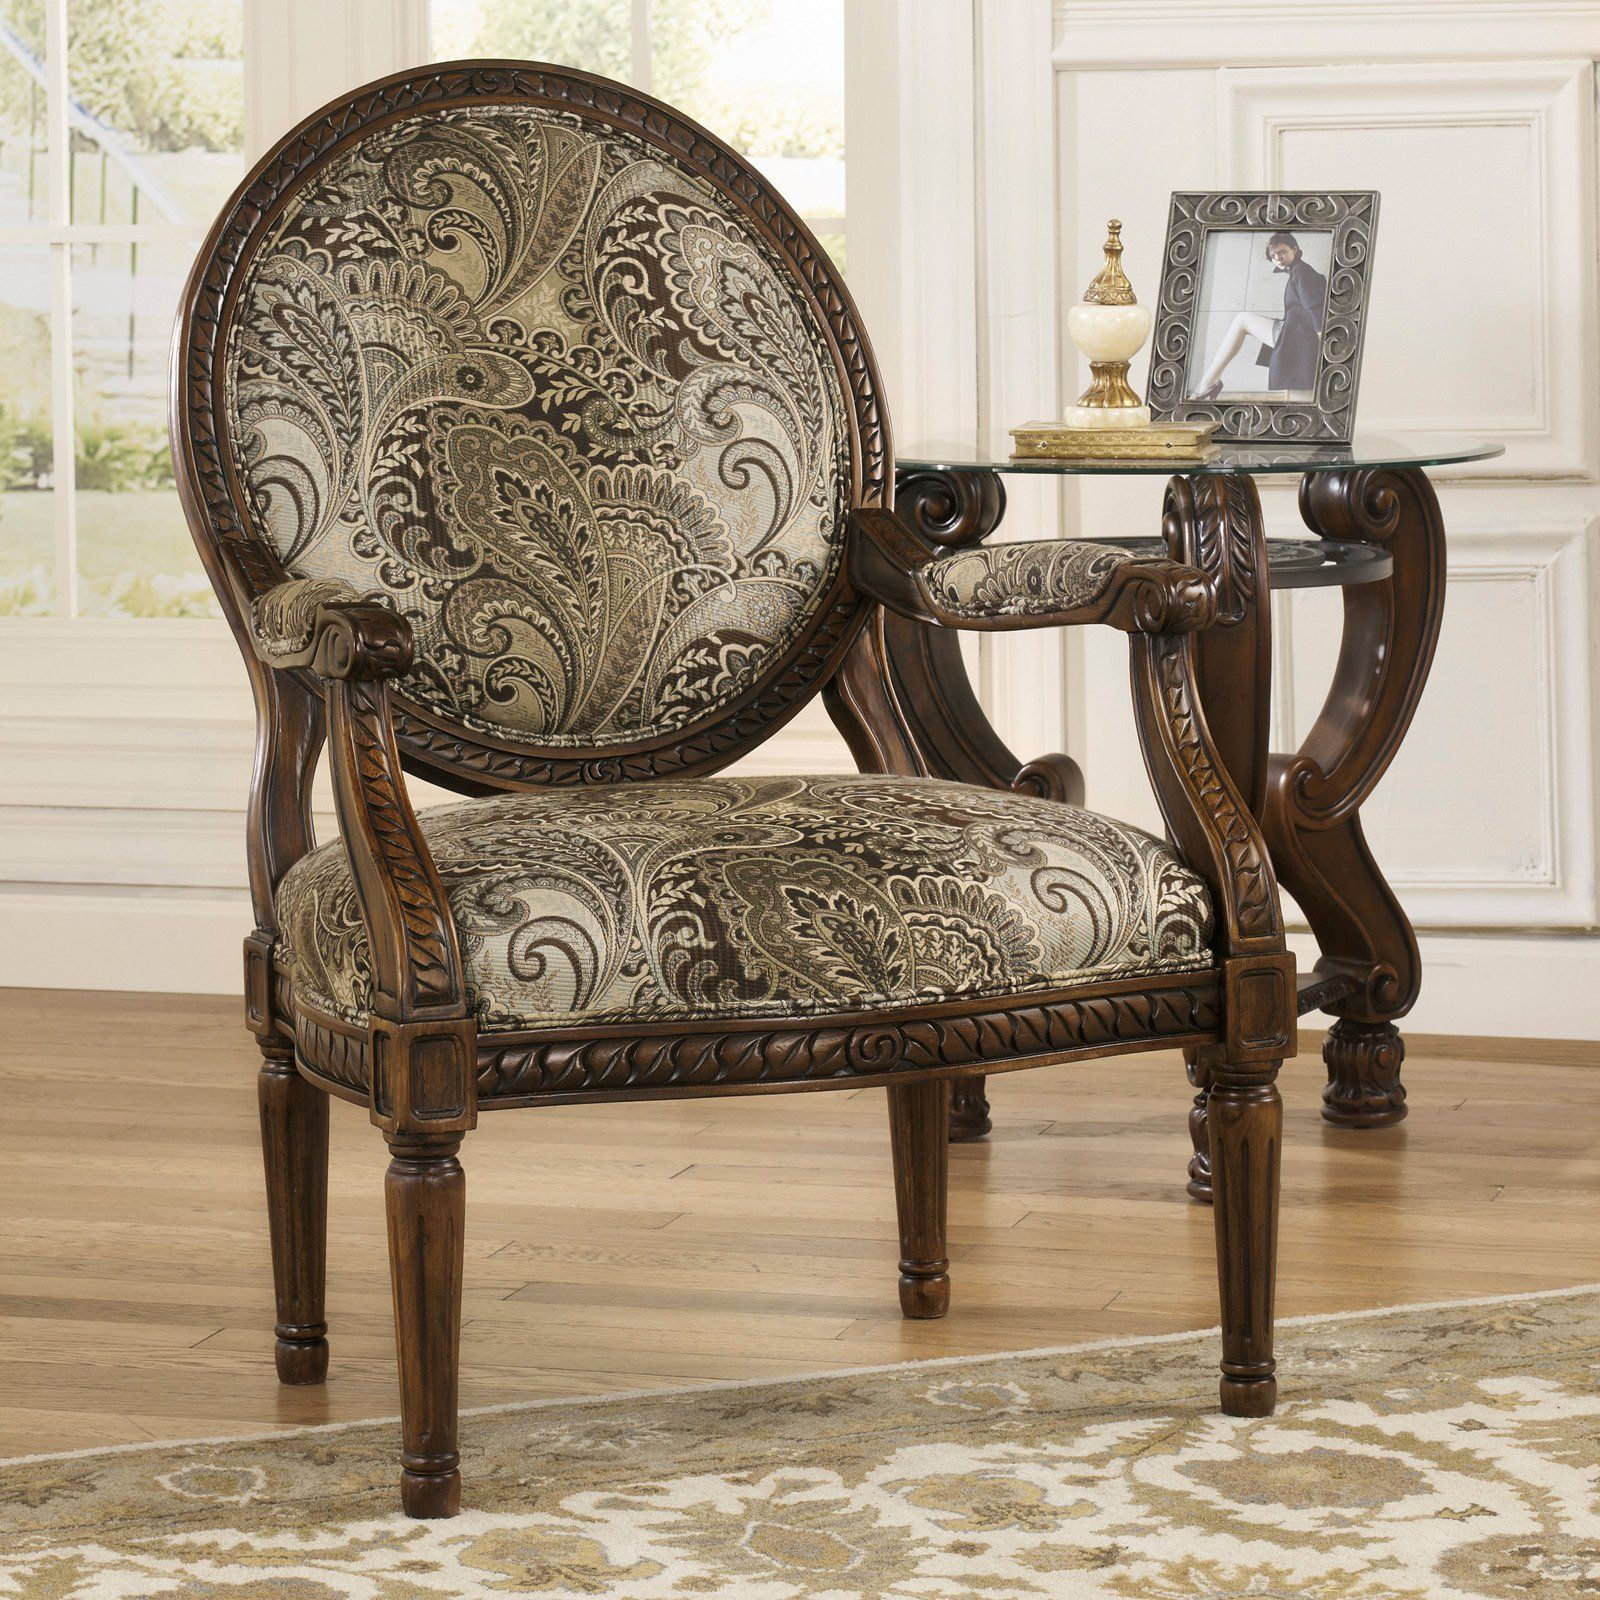 Signature Design By Ashley Martinsburg Showood Accent Chair - Meadow | from hayneedle.com